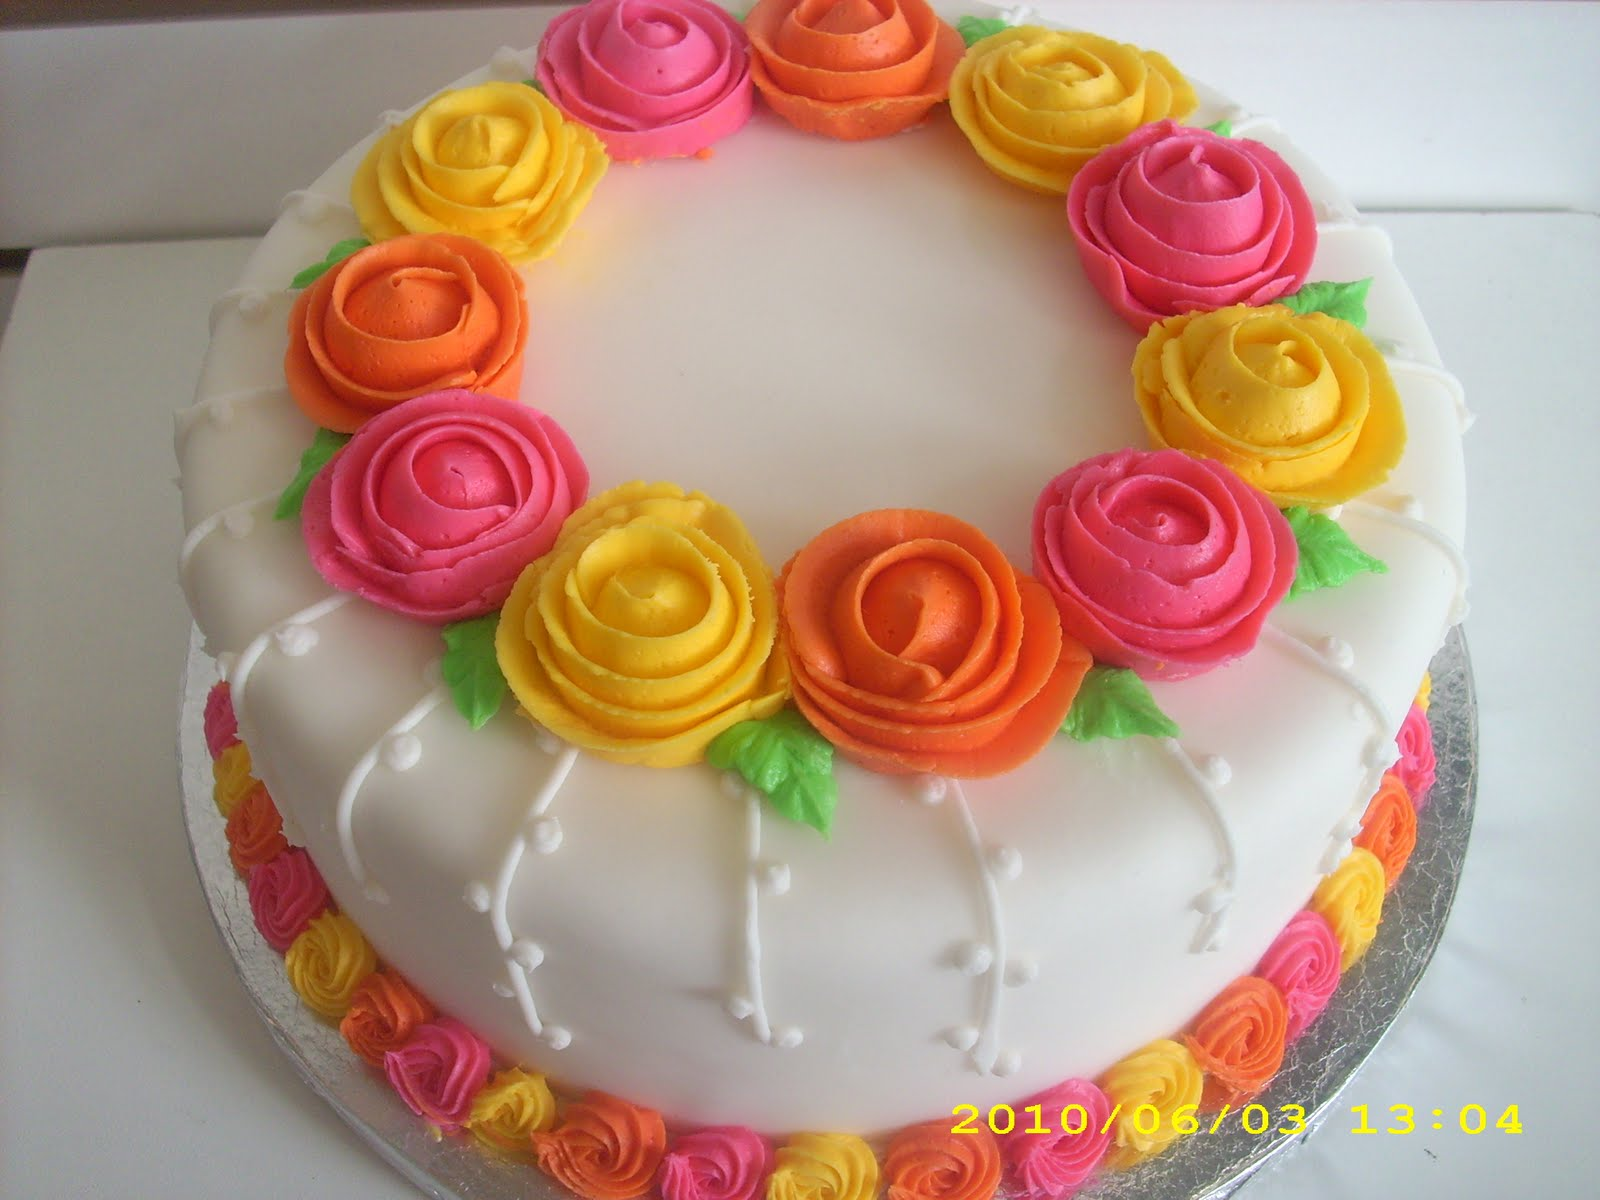 Basic Cake Decorating Ideas   Elitflat Cake A Thon Decorating Basics Wilton Method Course